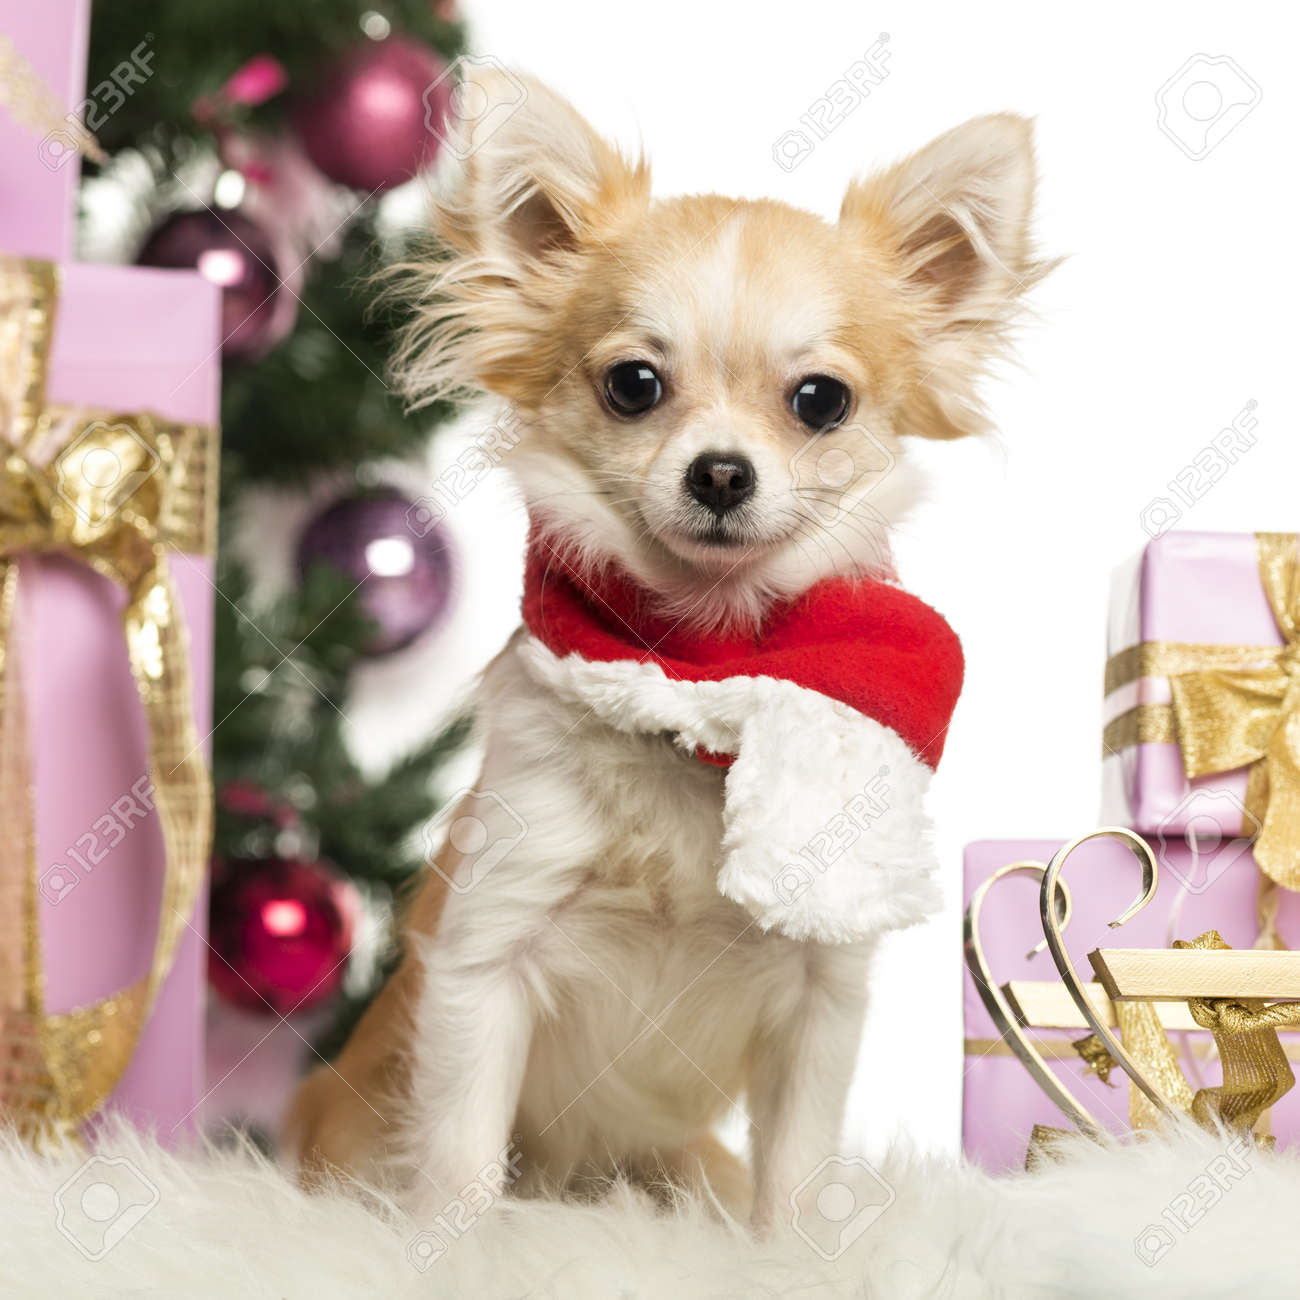 Chihuahua sitting wearing a Christmas scarf in front of Christmas decorations against white background Stock Photo - 19008964